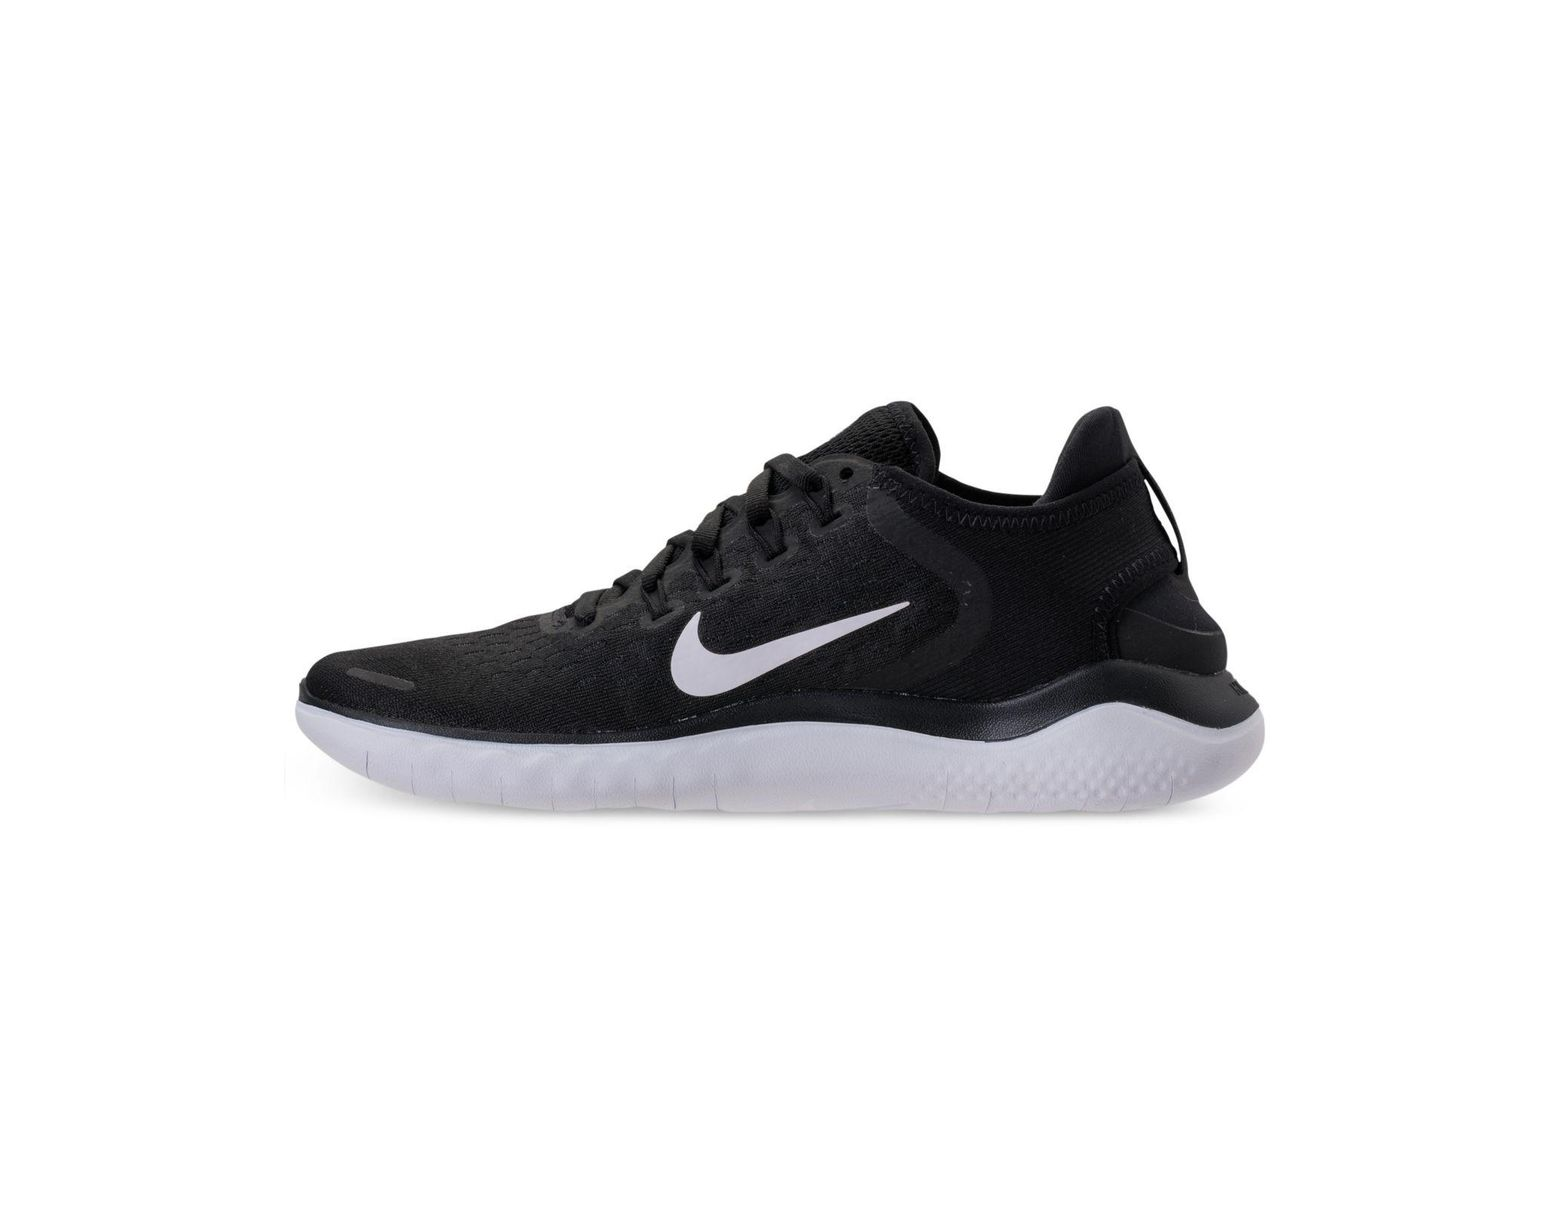 best service 7188e b9663 Nike Free Run 2018 Running Sneakers From Finish Line in Black - Lyst